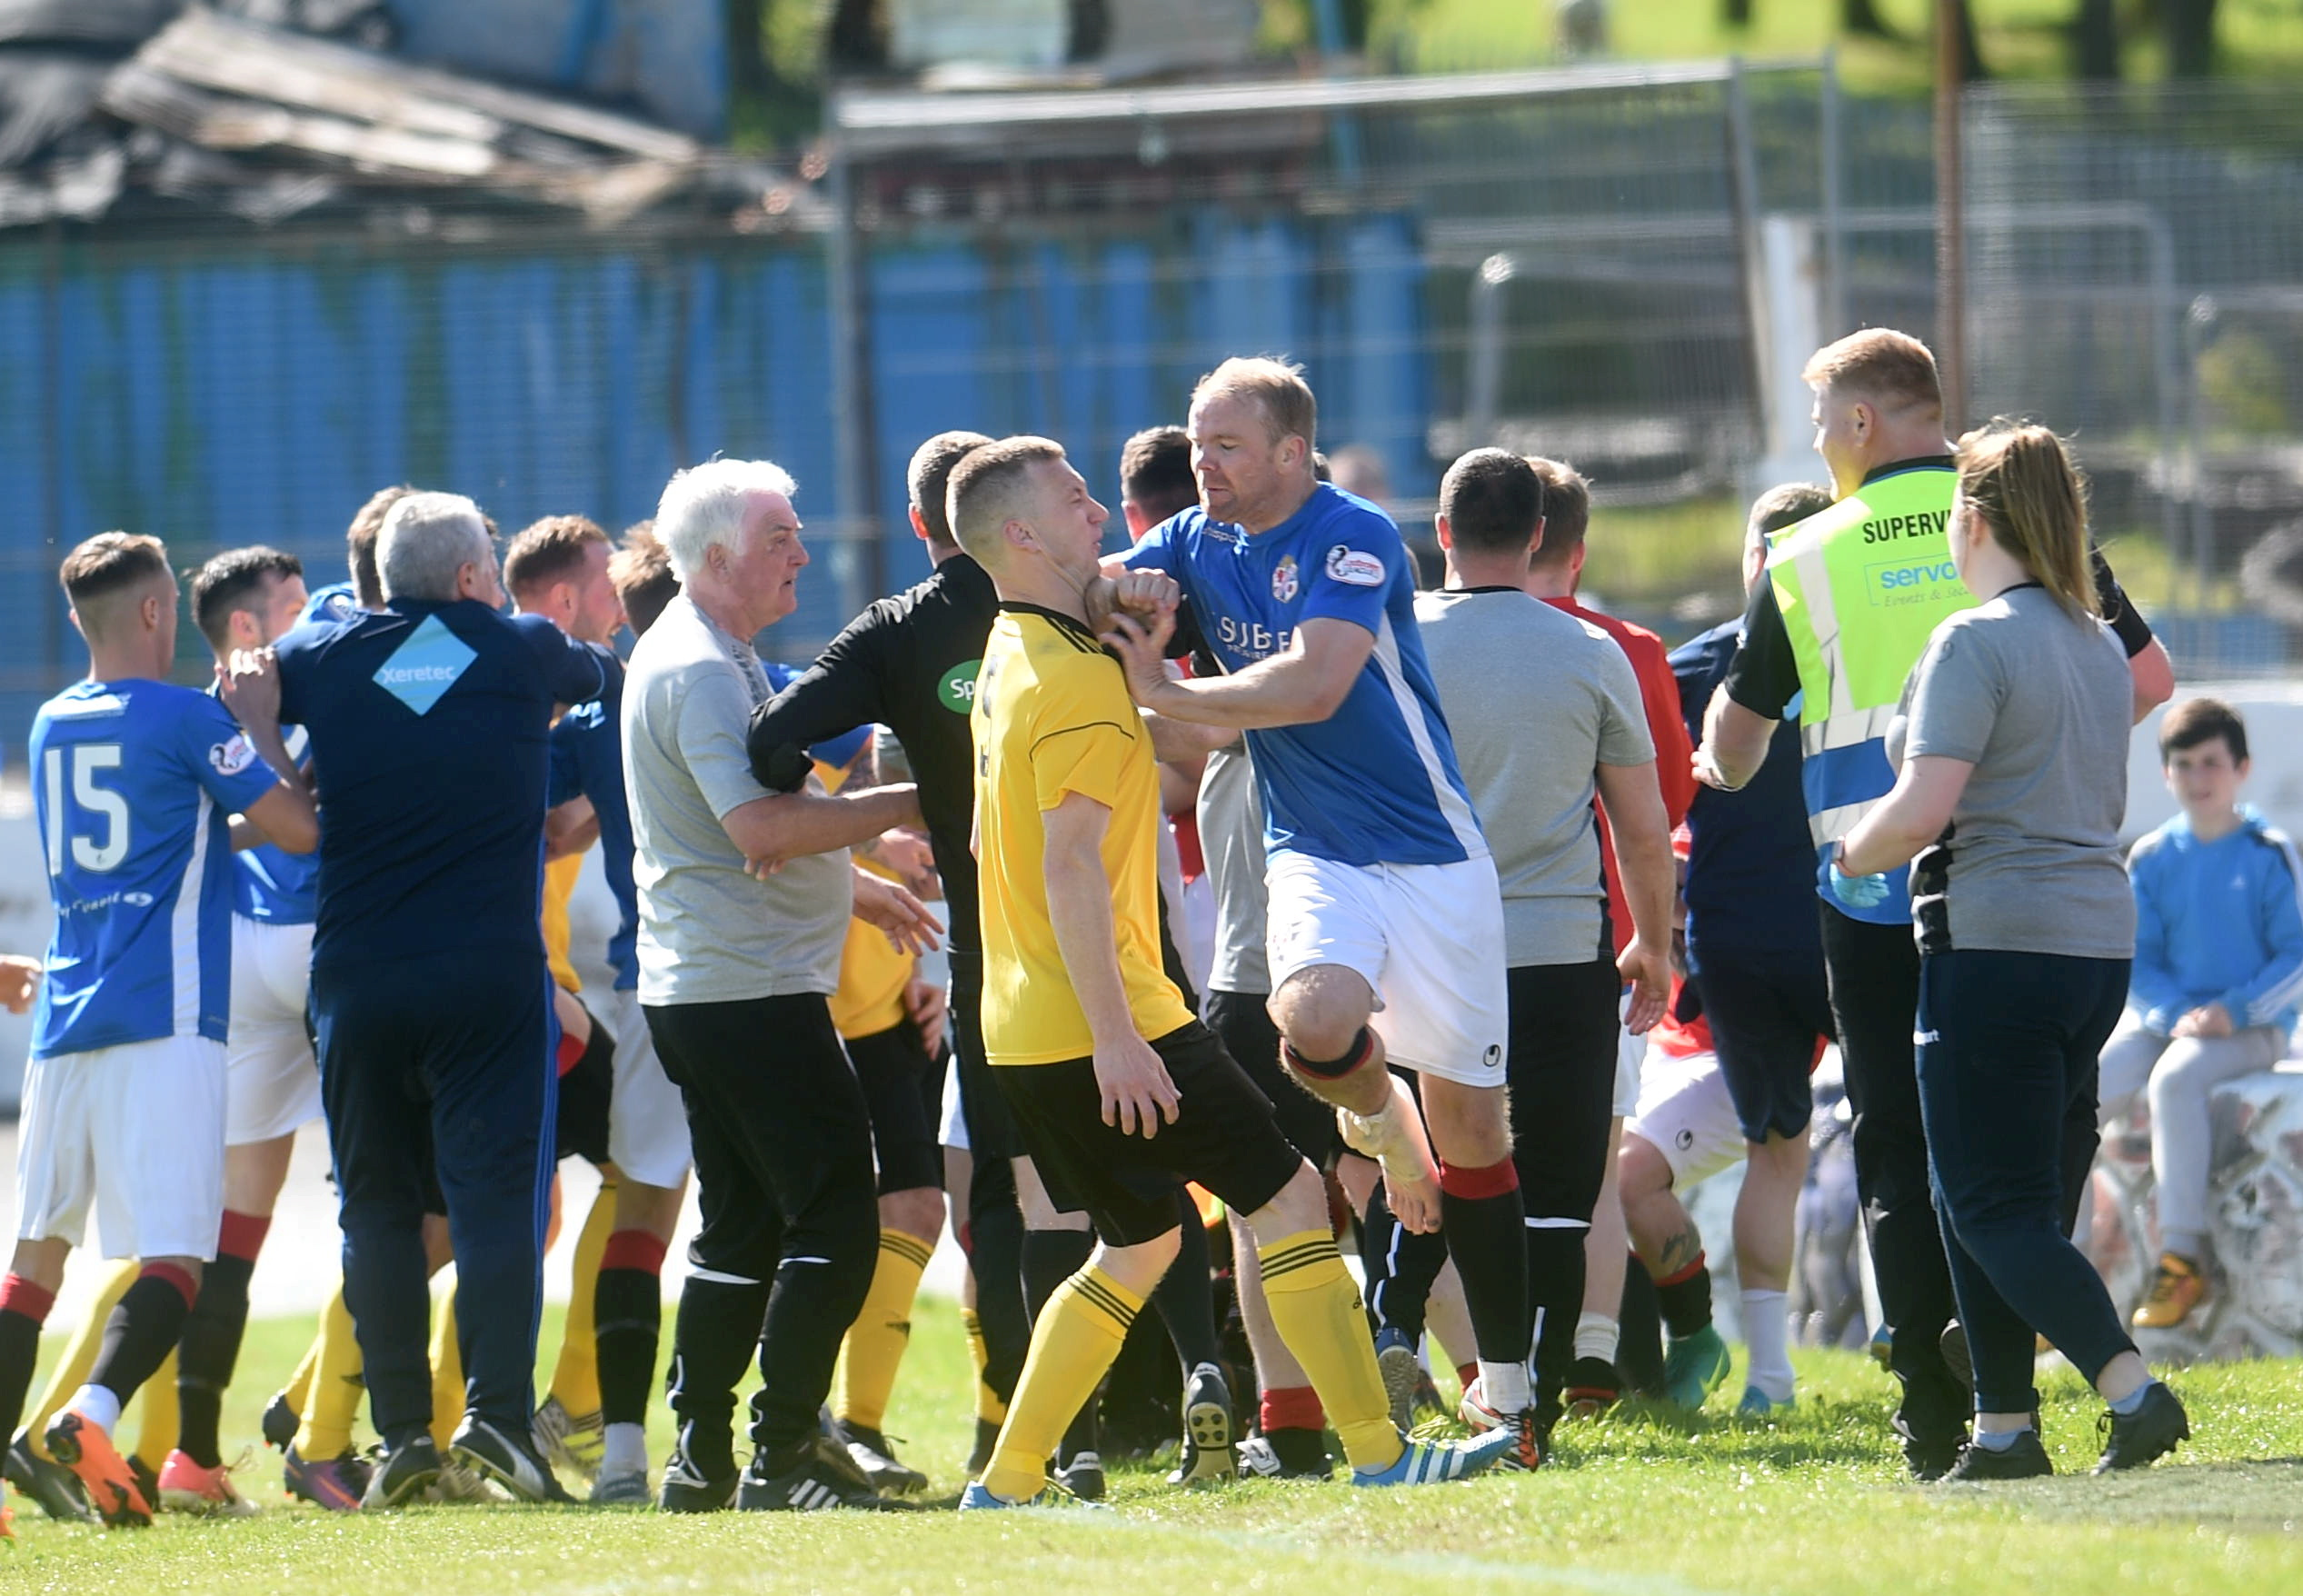 Cowdenbeath's Bryan Gilfillan punching Eric Watson, an incident after which the Cove skipper was sent off in the League Two play-off final last summer.